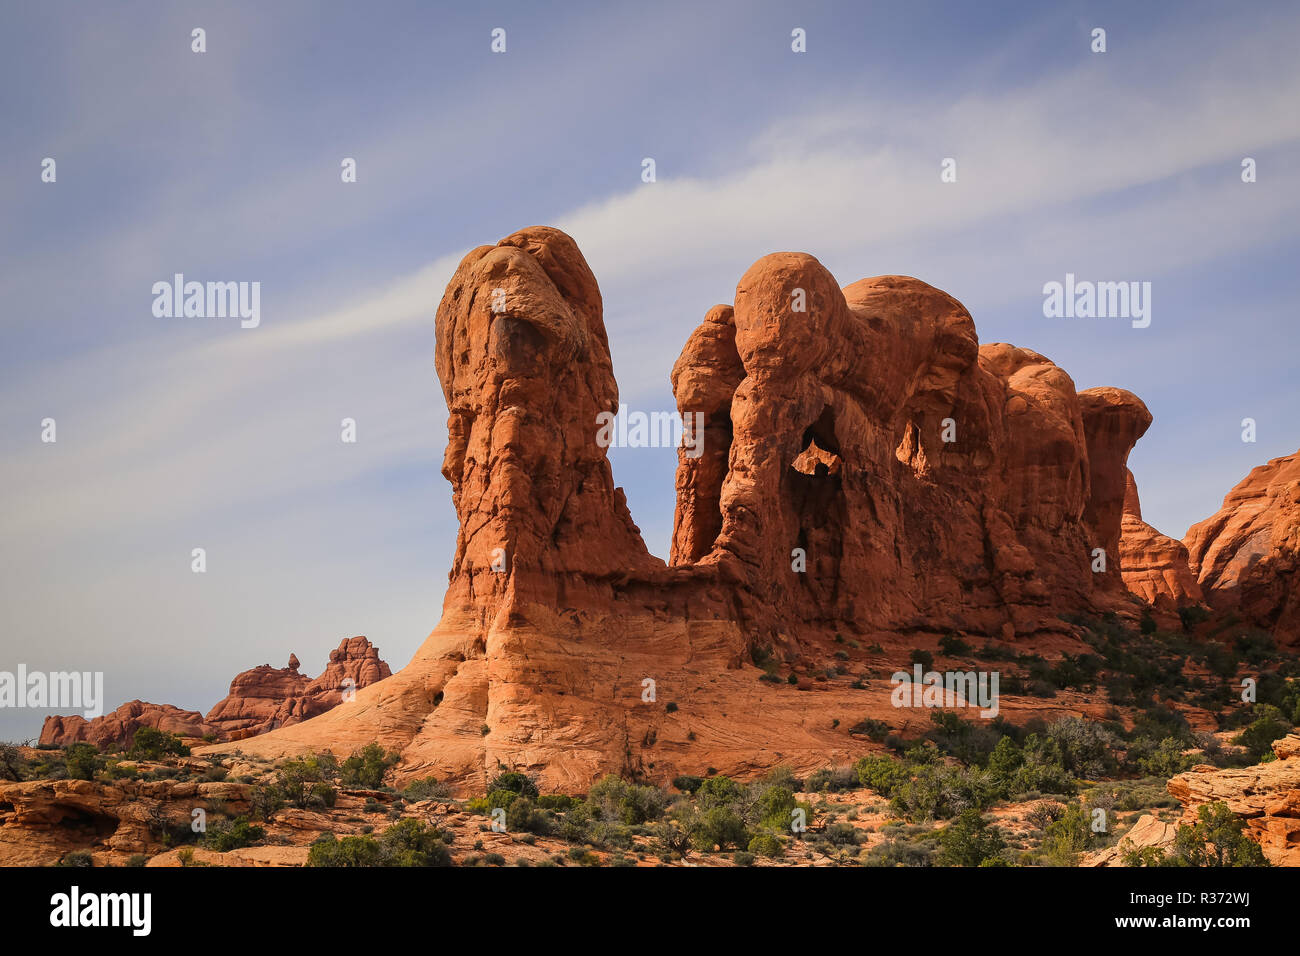 elephant butte in arches national park in the utah desert - Stock Image